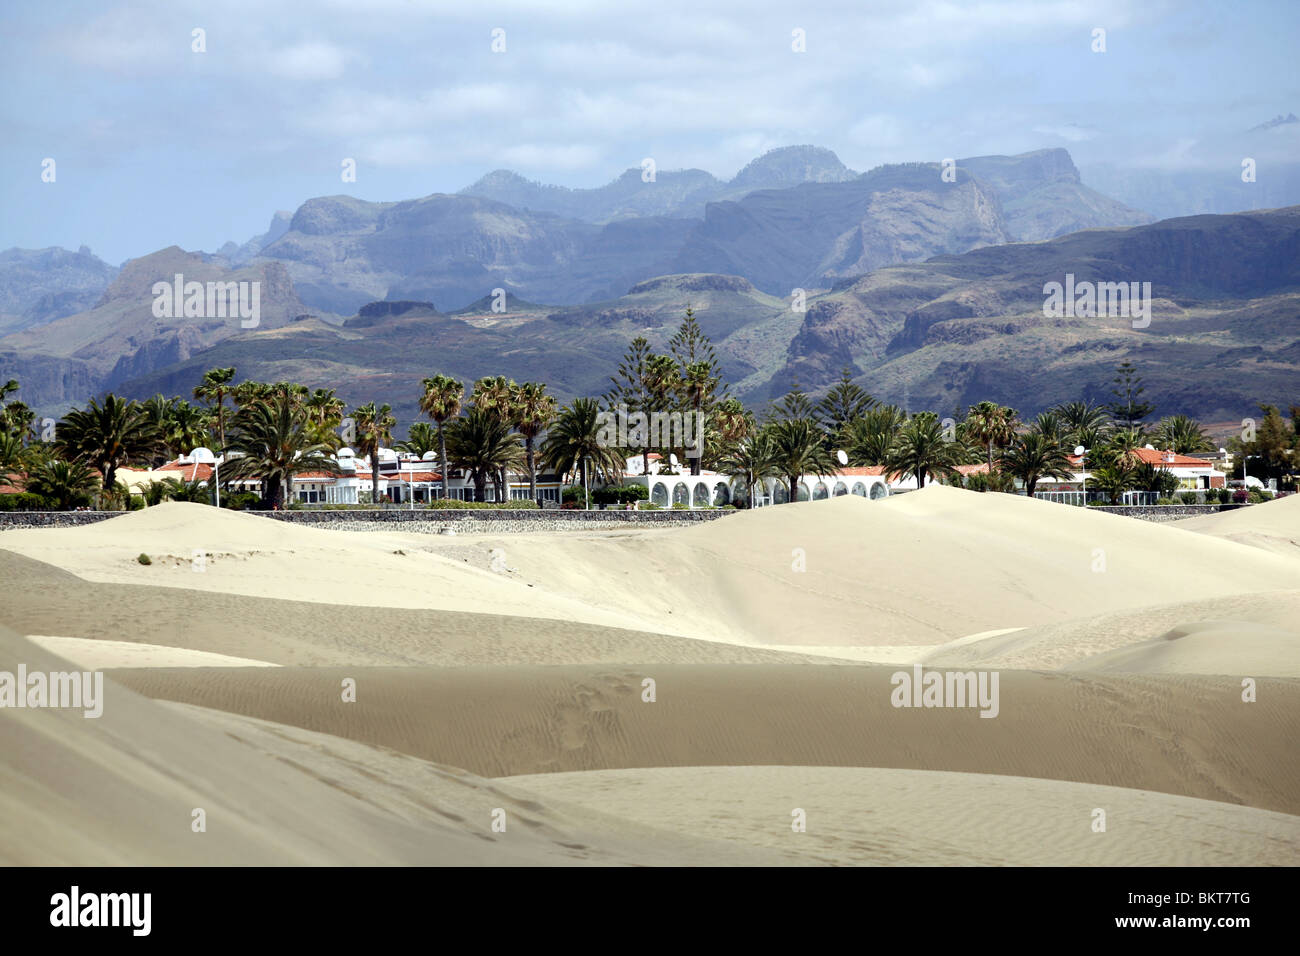 Sanddünen in Playa del Ingles, Gran Canaria Stockbild